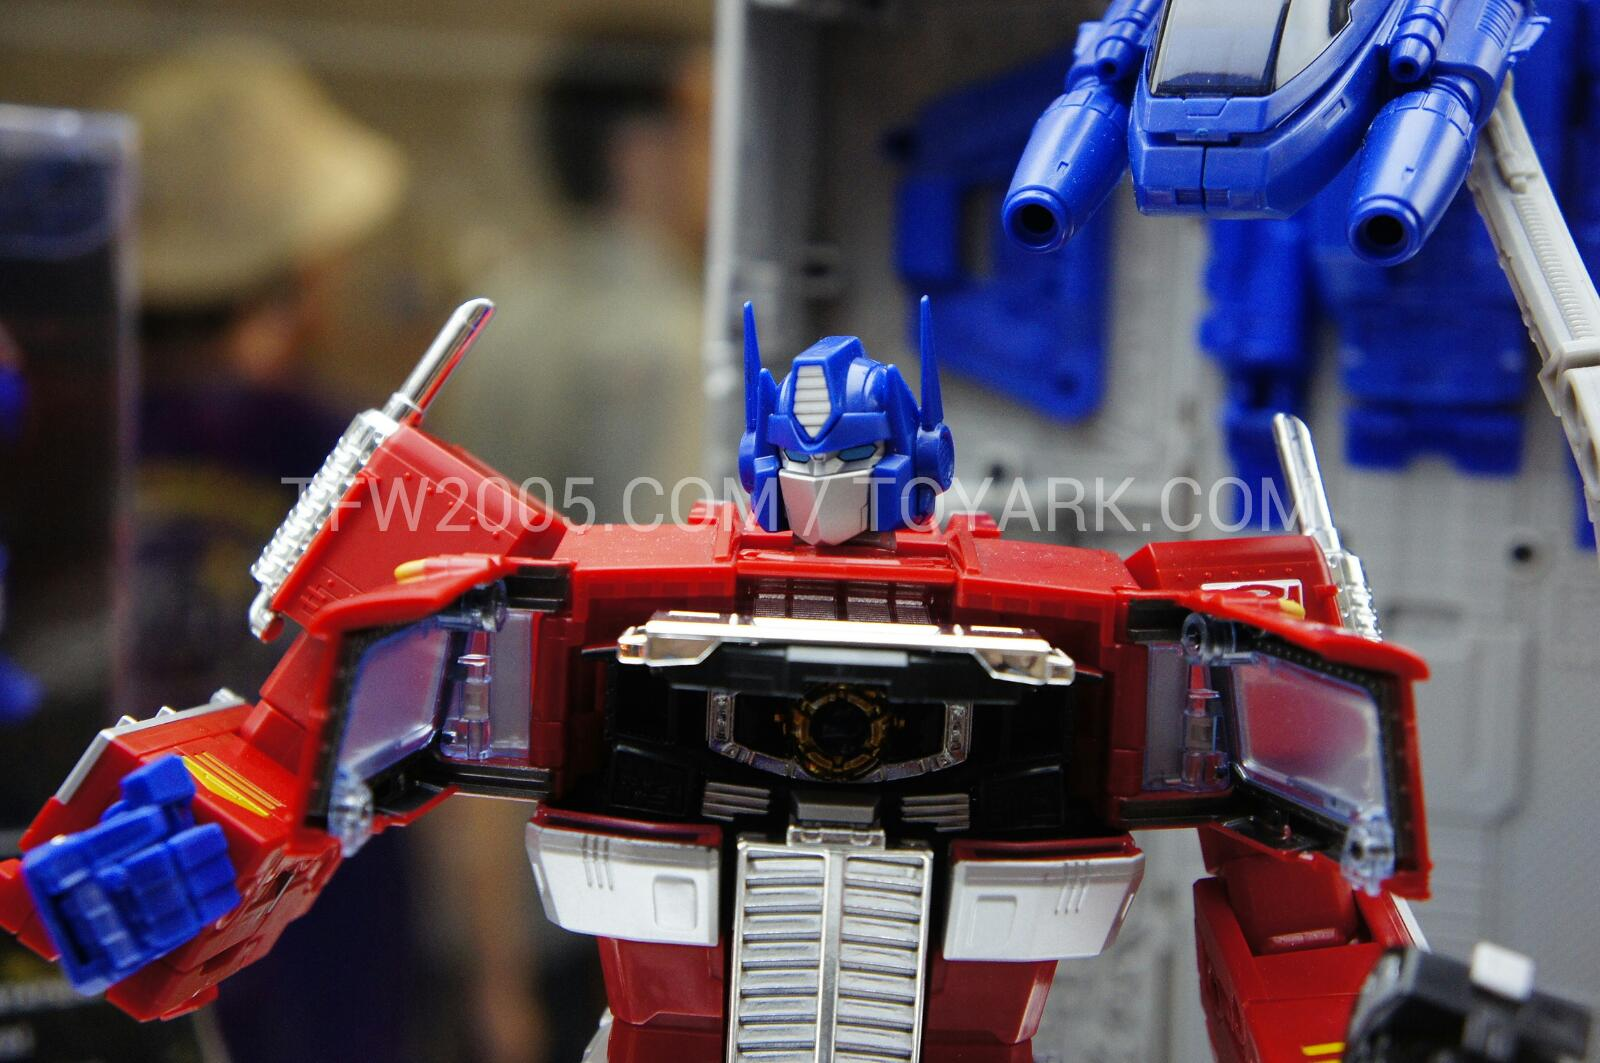 Hasbro Masterpiece Optimus Prime Will Cost You 9999 Transformers Mp 10 Convoy Additional Images Dsc3069